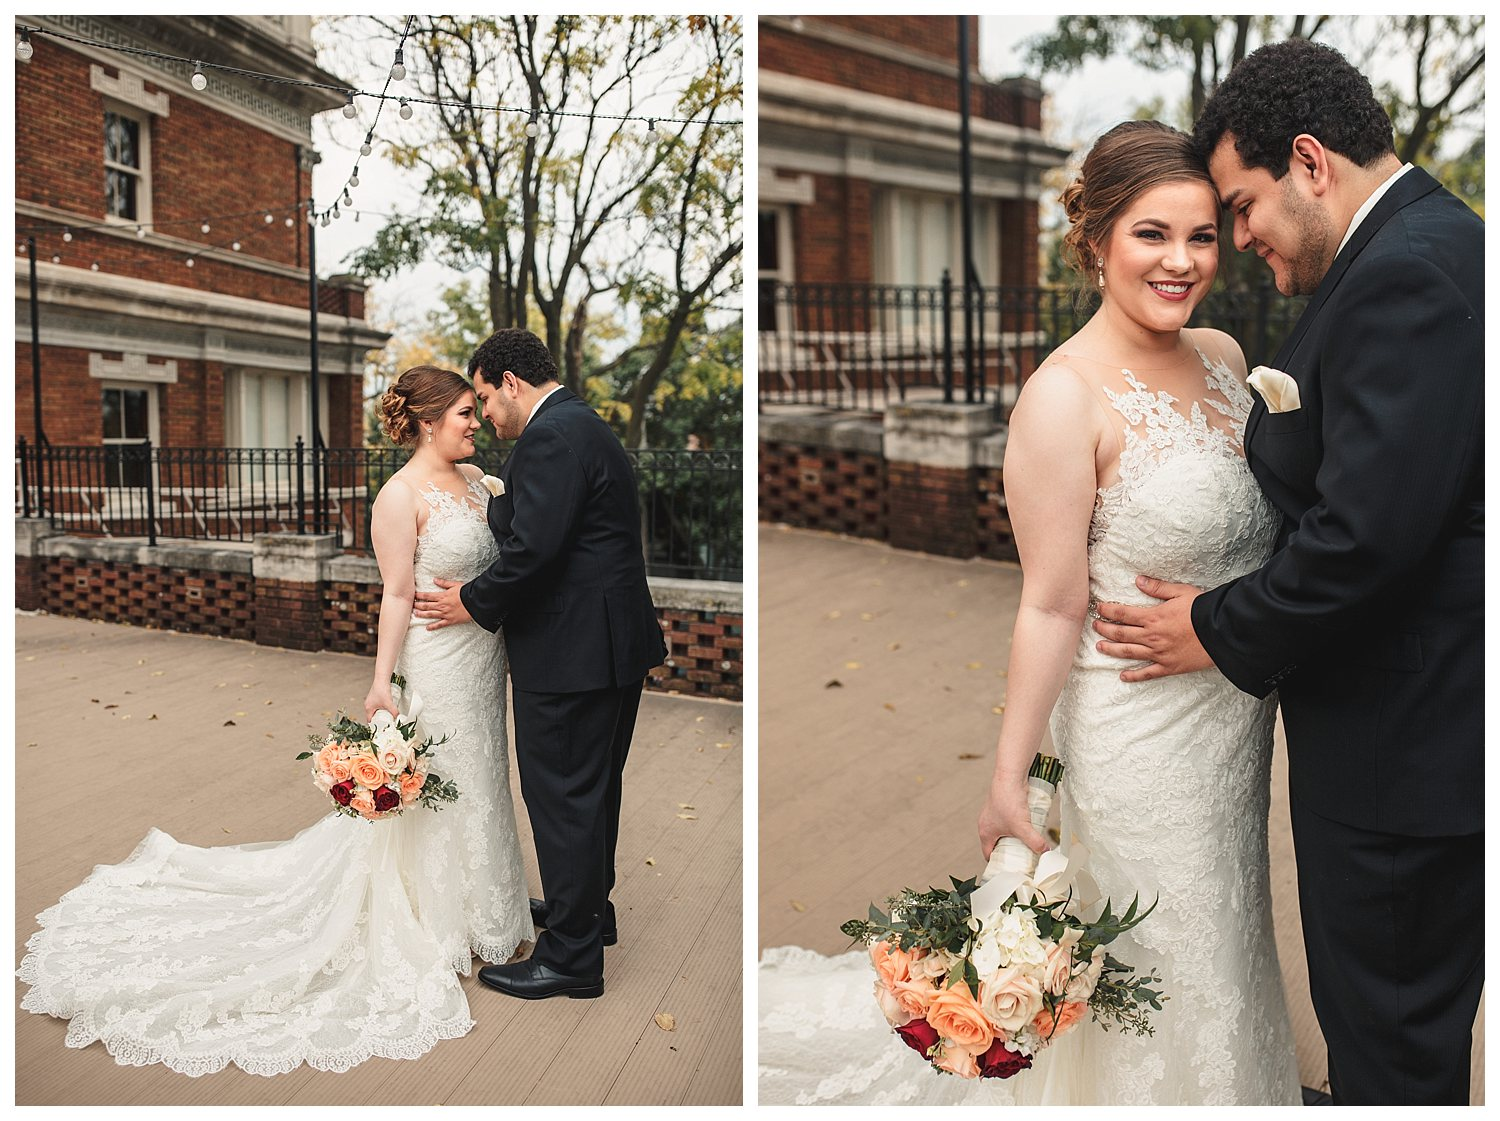 Kelsey_Diane_Photography_Loose_Mansion_Wedding_Photography_Kansas_City_Victor_Lyndsay_0121.jpg